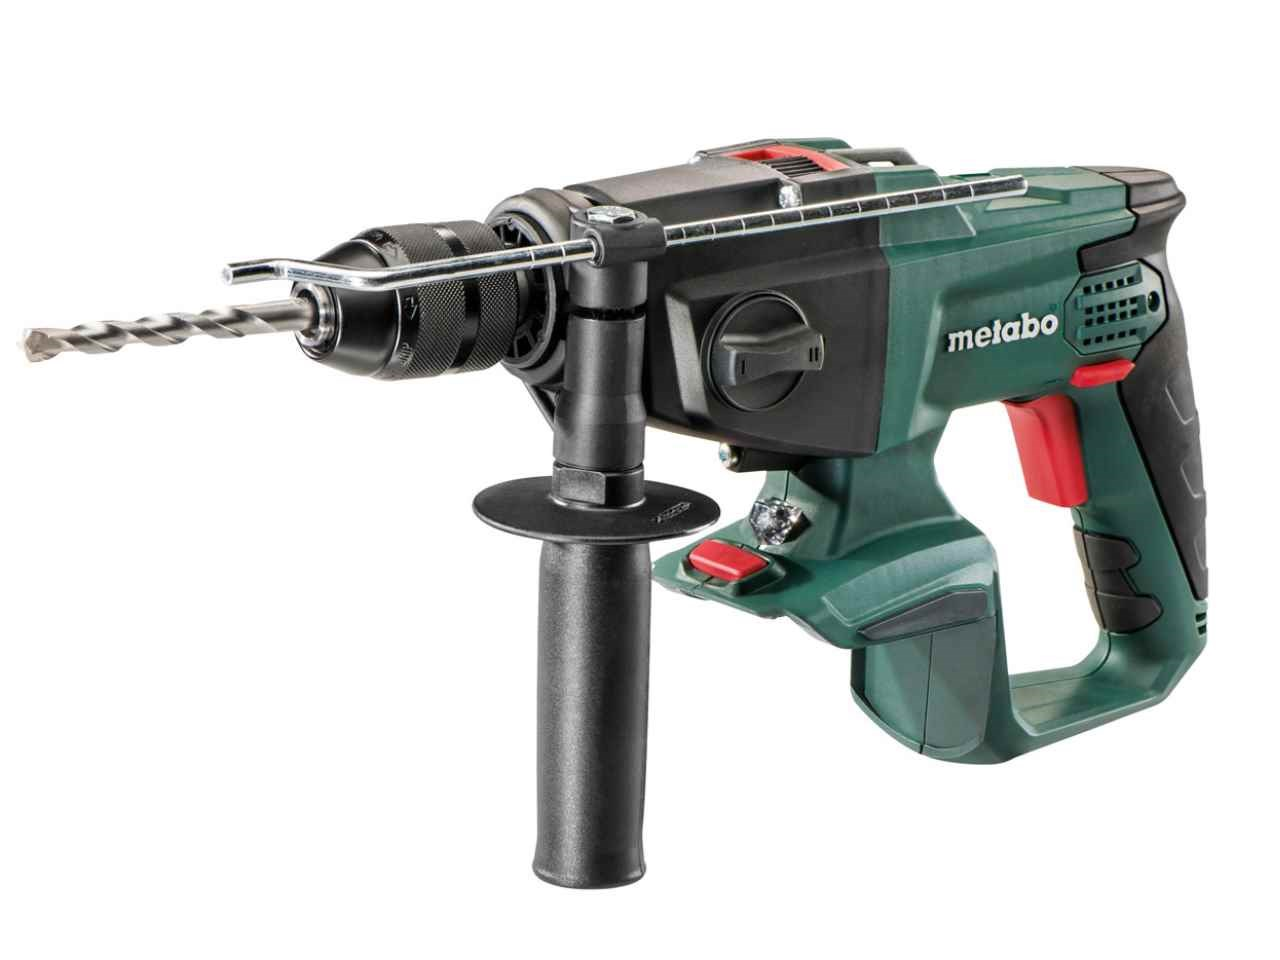 metabo 600845840 18v cordless impact drill bare unit. Black Bedroom Furniture Sets. Home Design Ideas